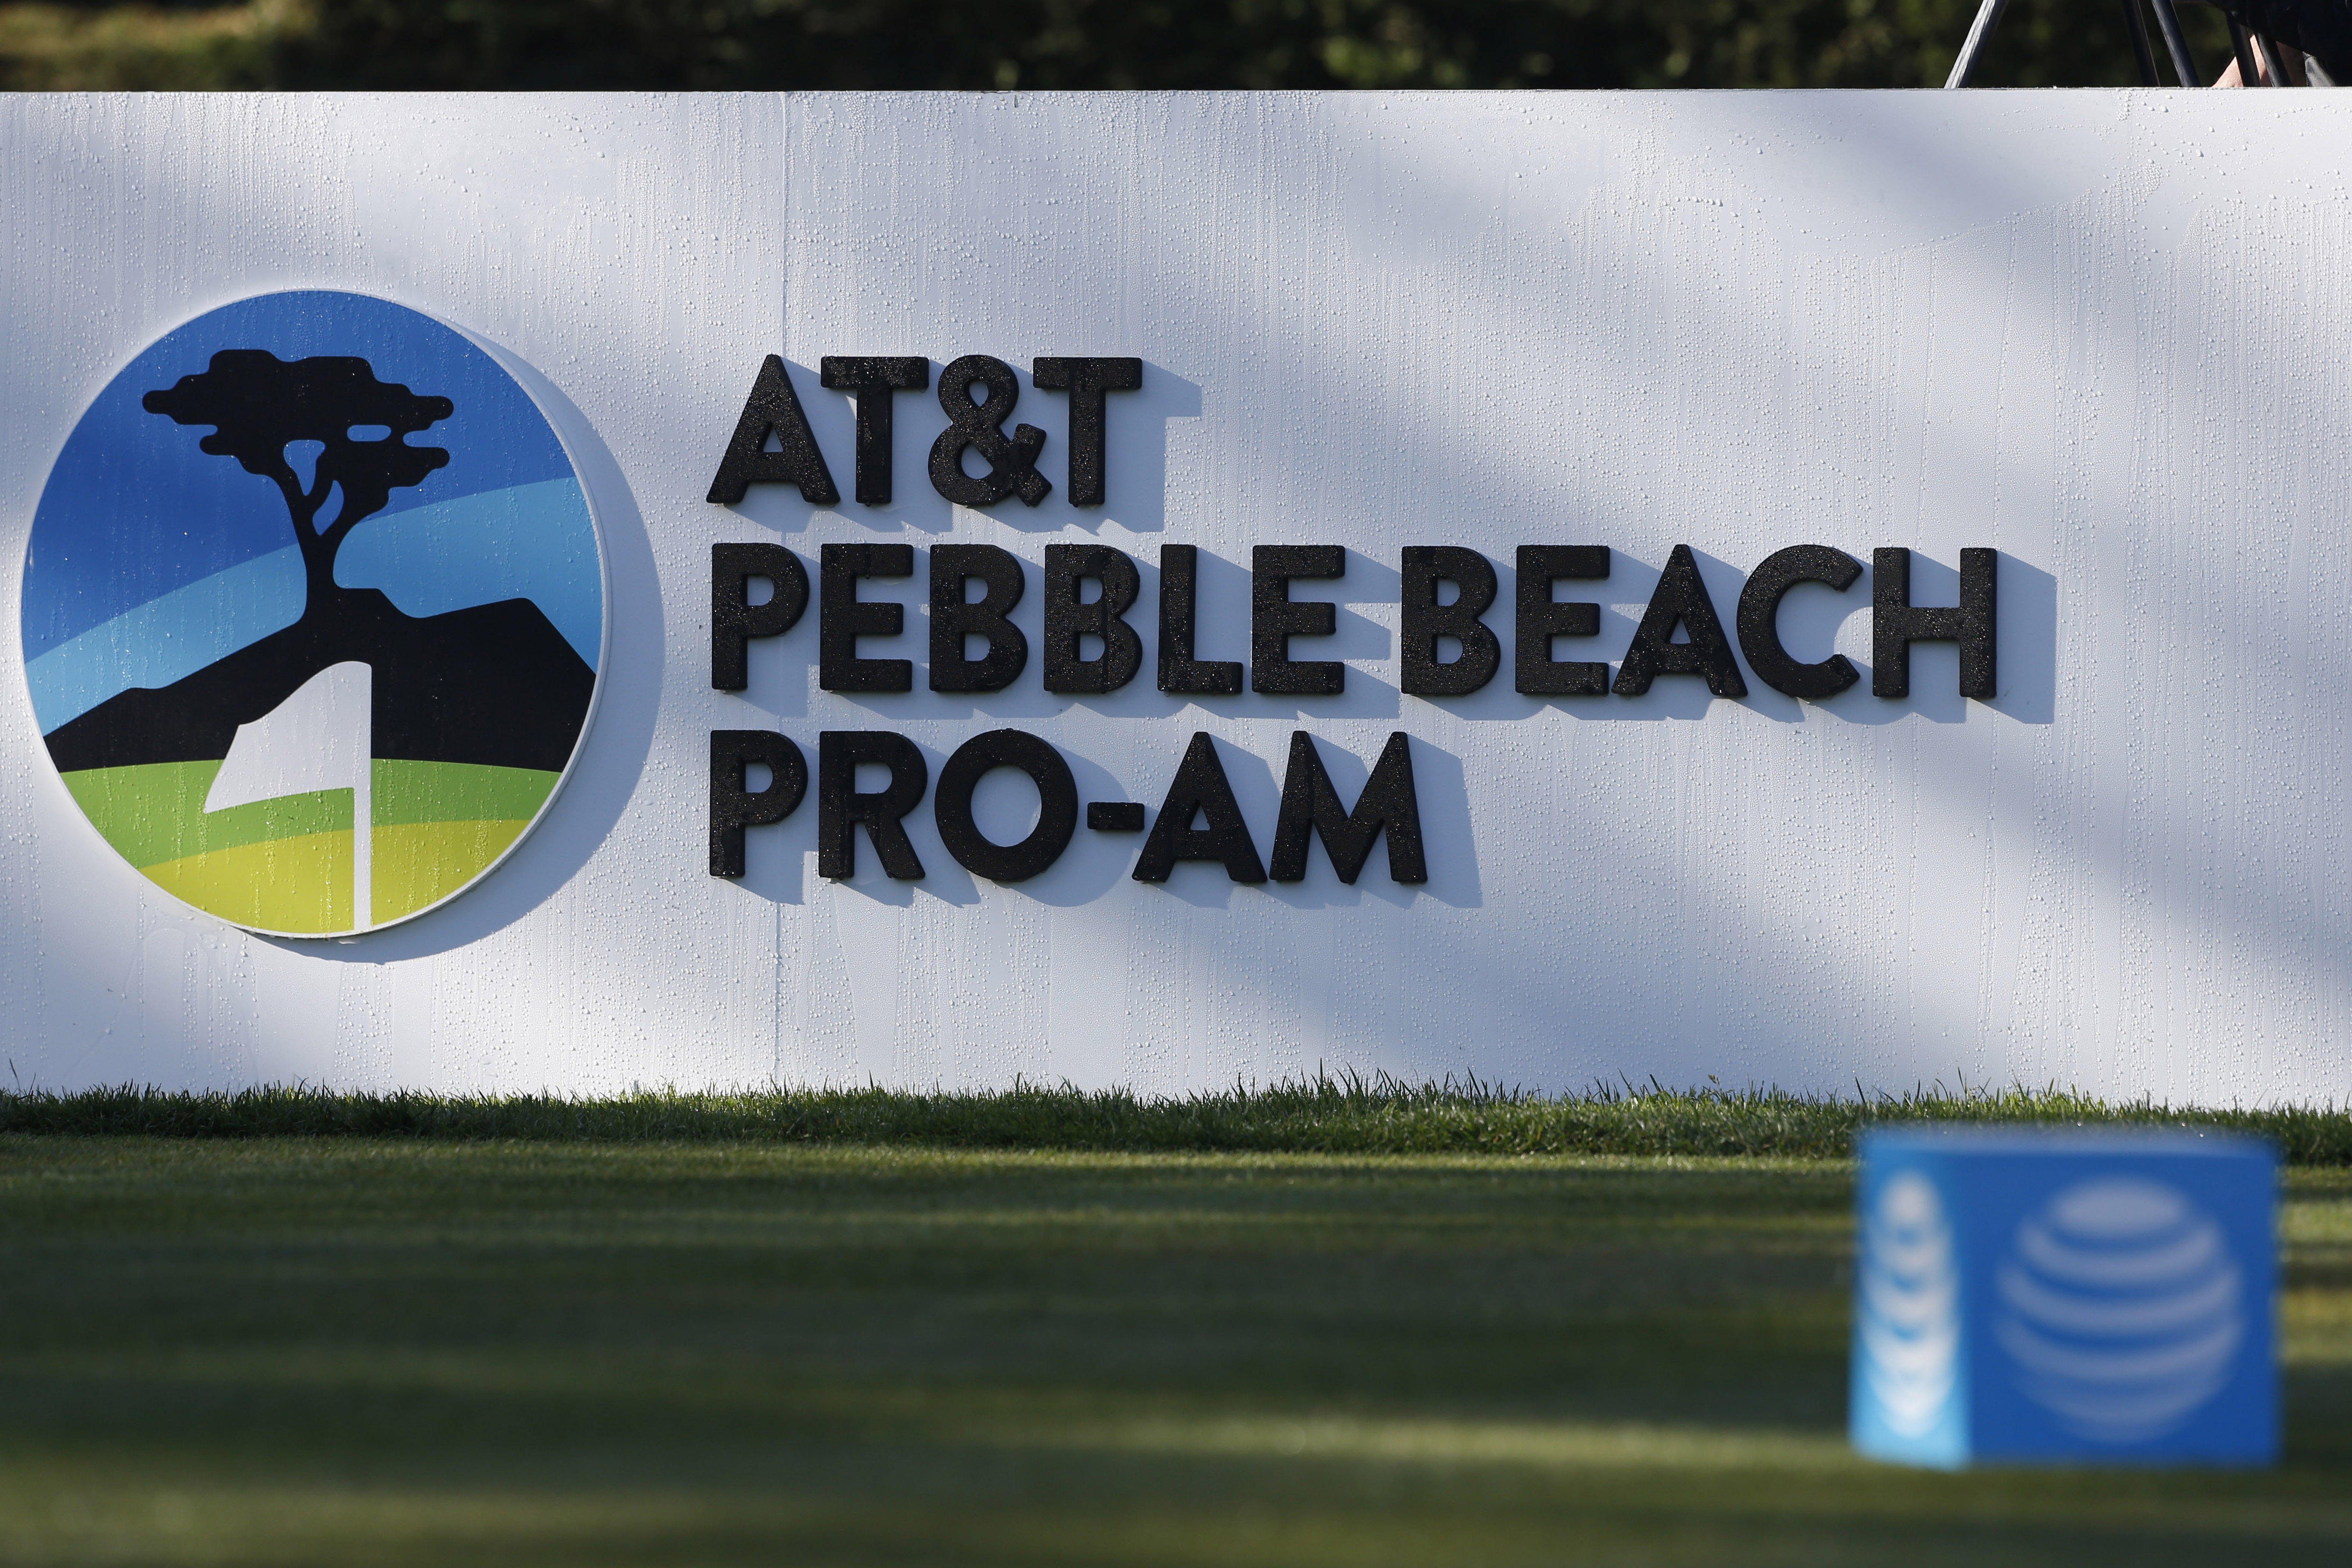 2016 Pebble Beach Ca Usa A General View Of Signage Board Behind The First Tee During Final Round At T National Pro Am